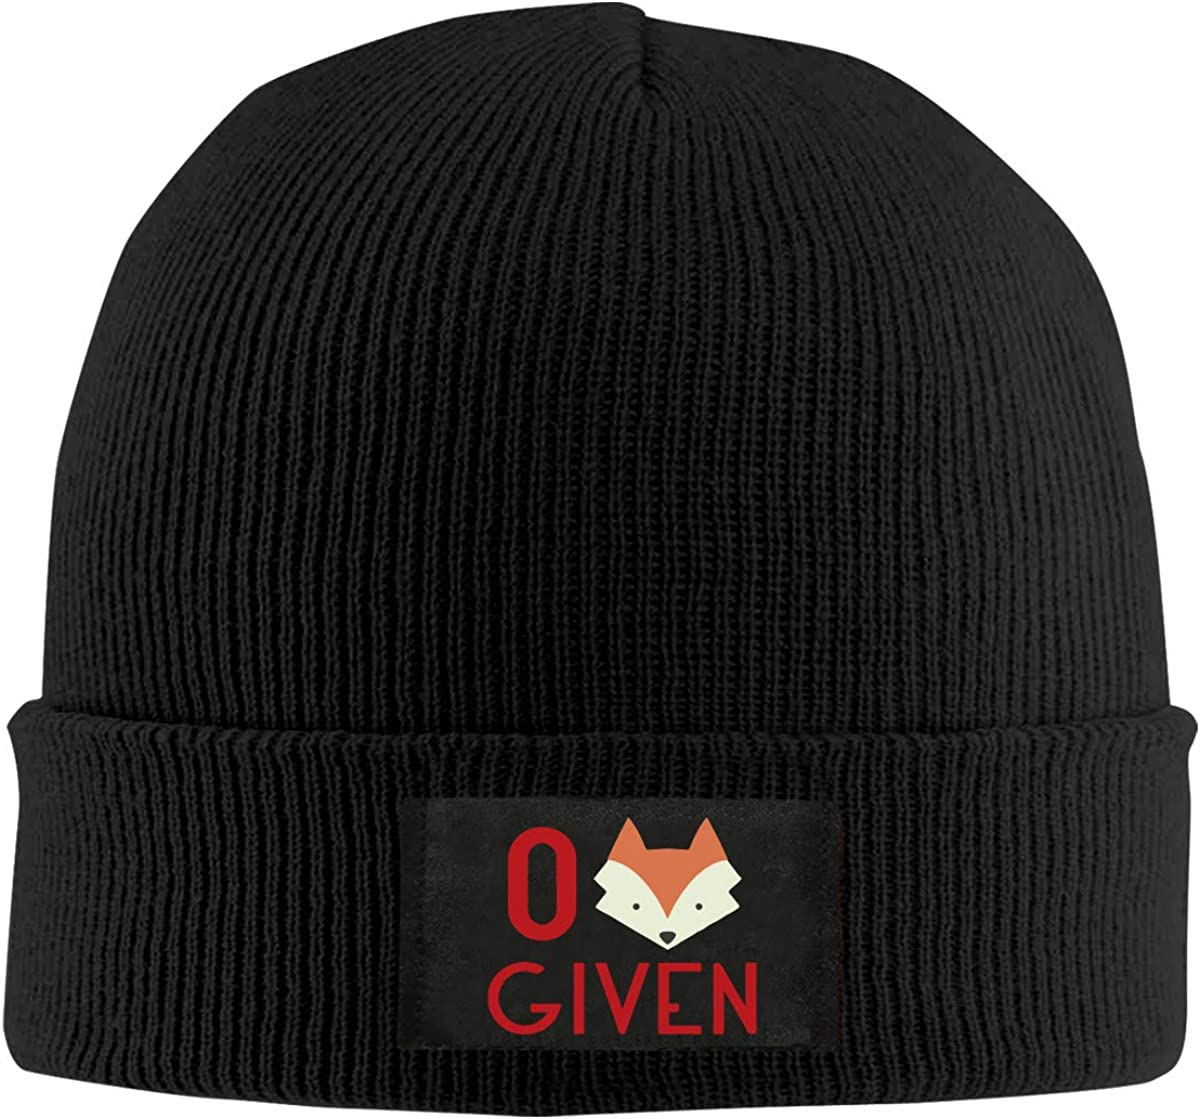 Zero Fox Given Soft Skull Cap Mens and Womens 100/% Acrylic Knitted Hat Cap